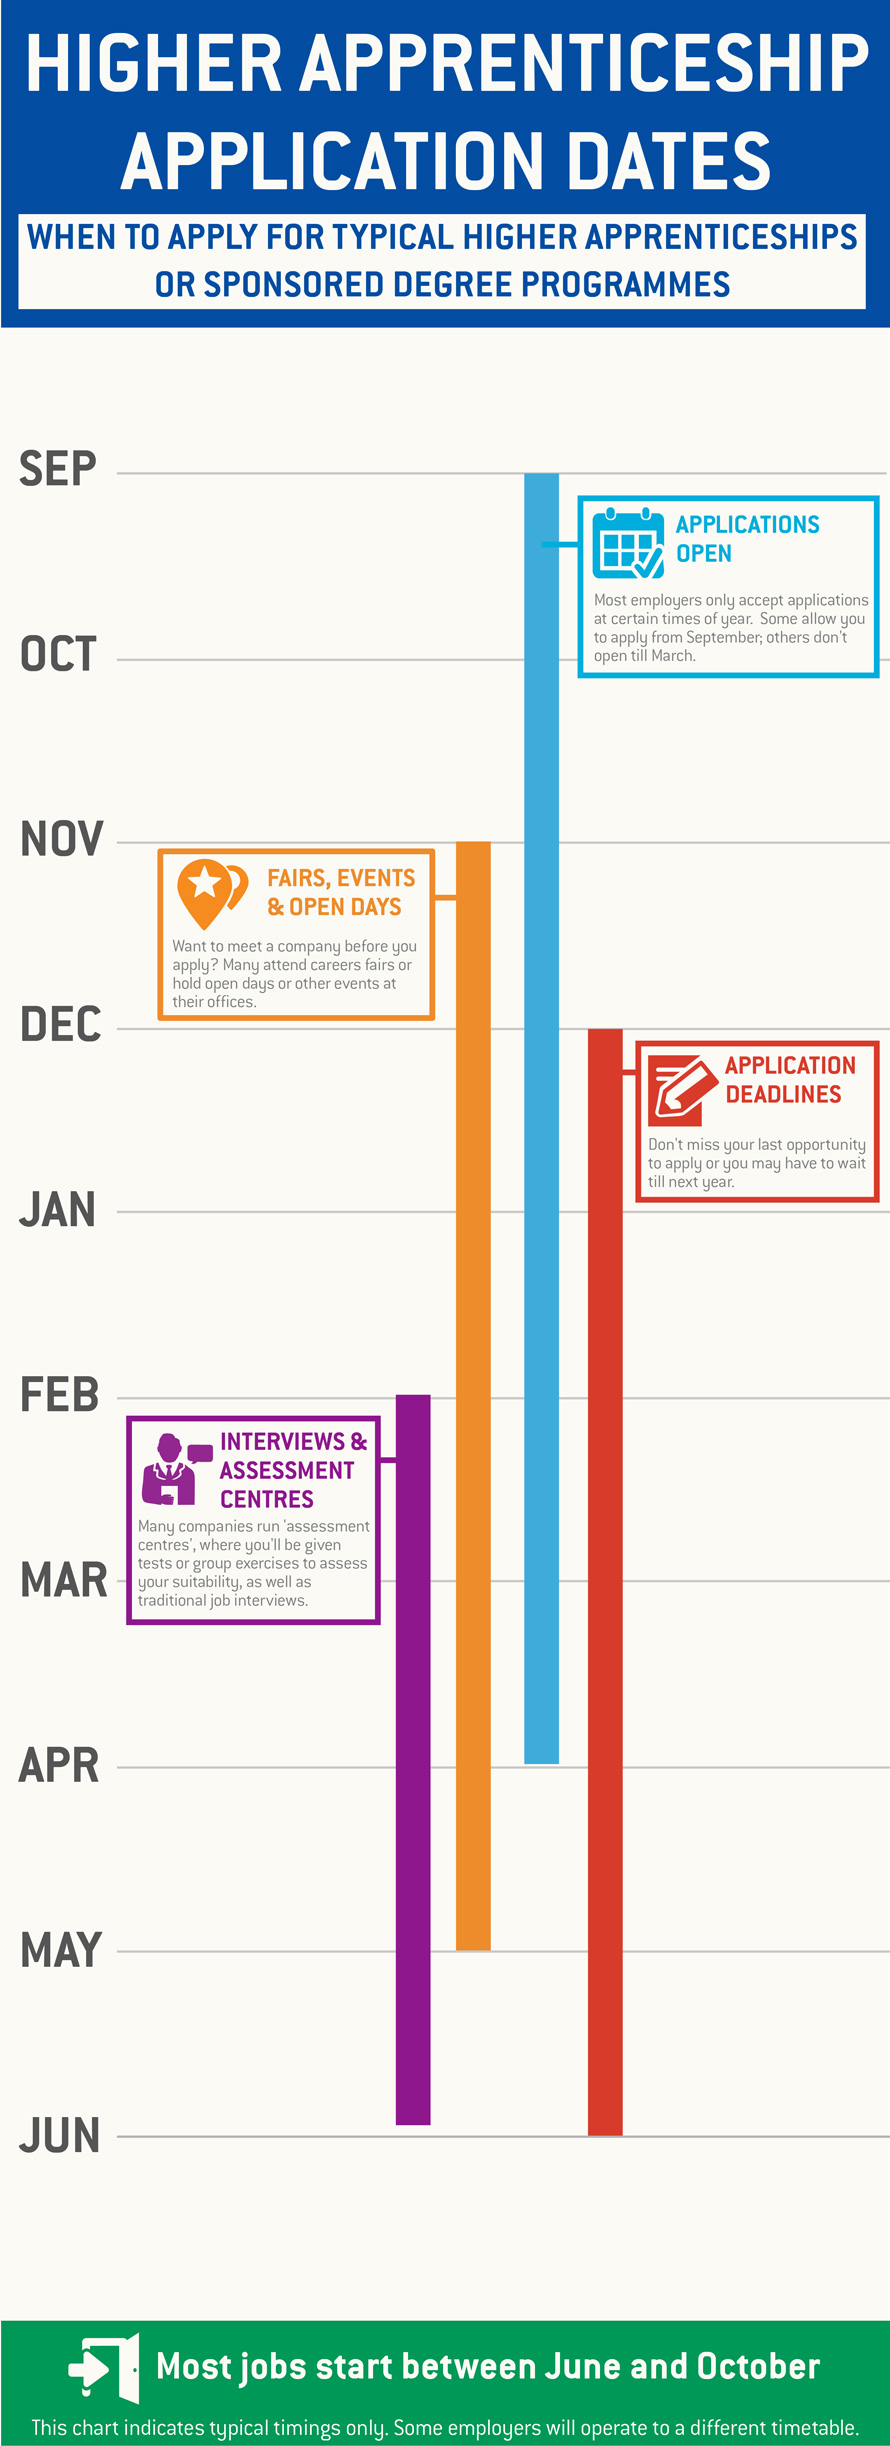 Application timeline for higher apprenticeships and sponsored degrees